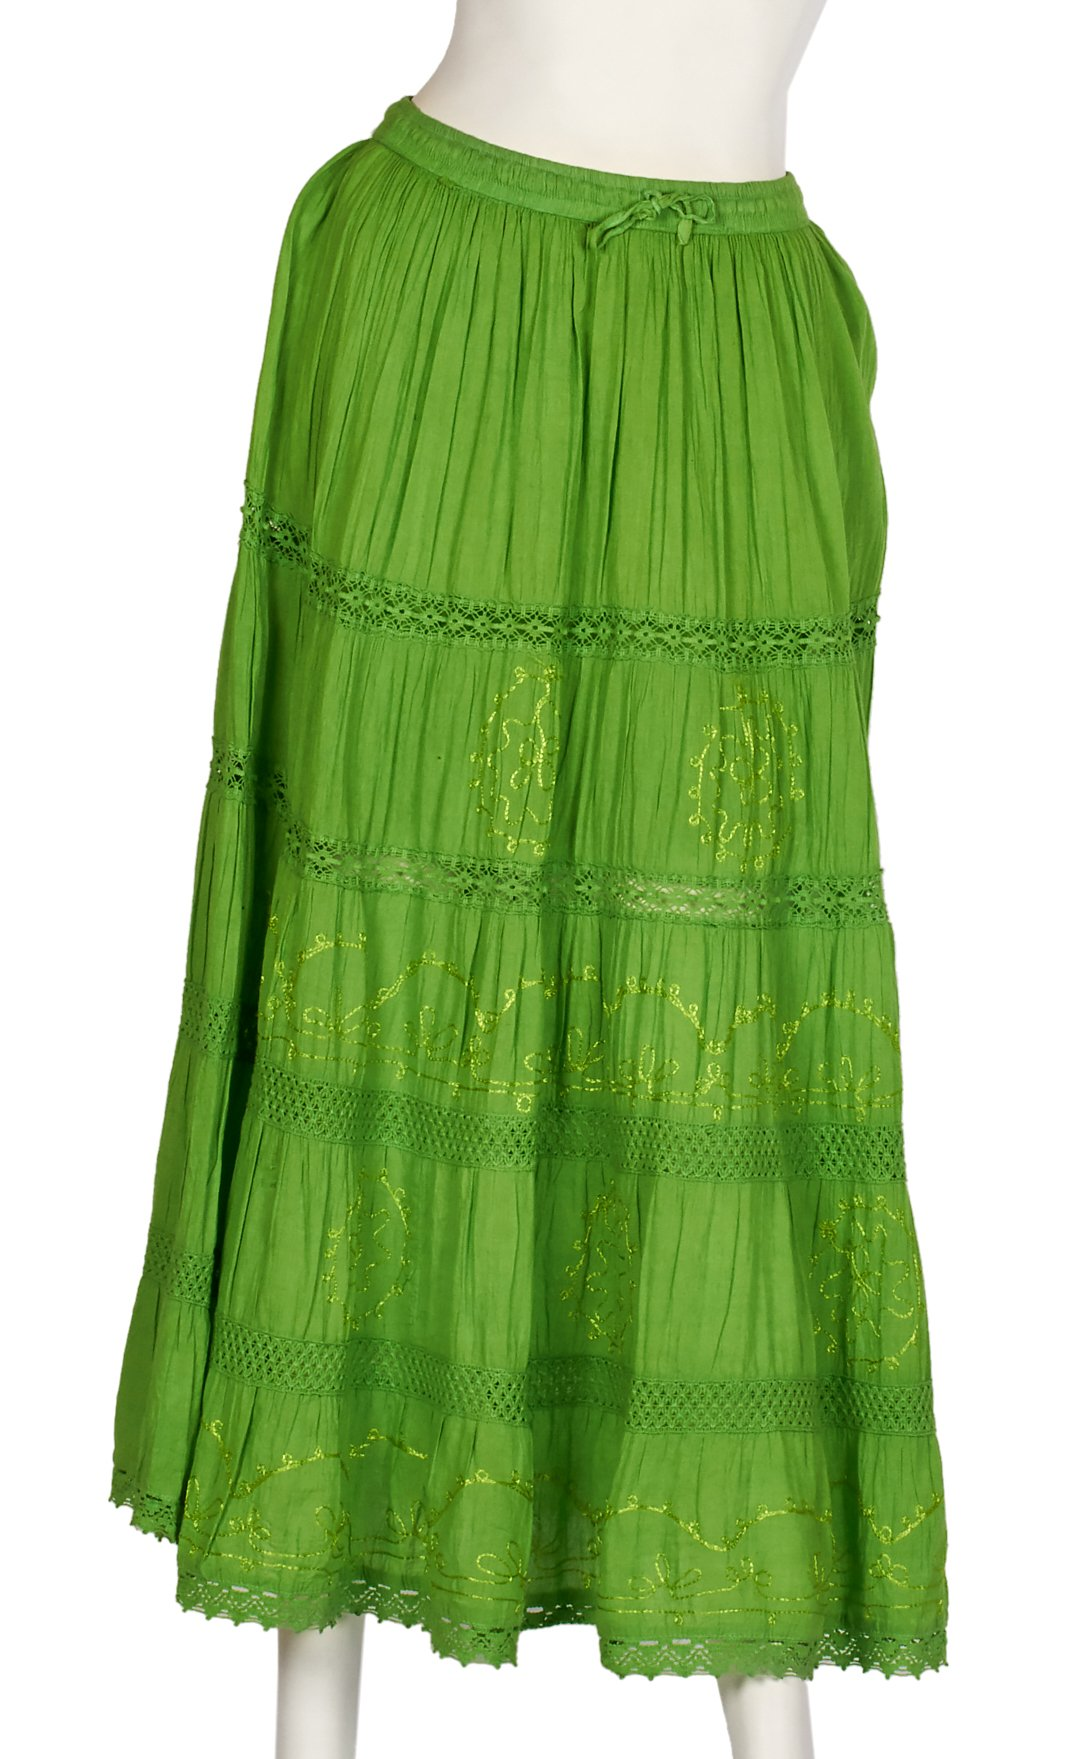 JOTW Indian Long Skirts with Solid Embroidered Design (Green)